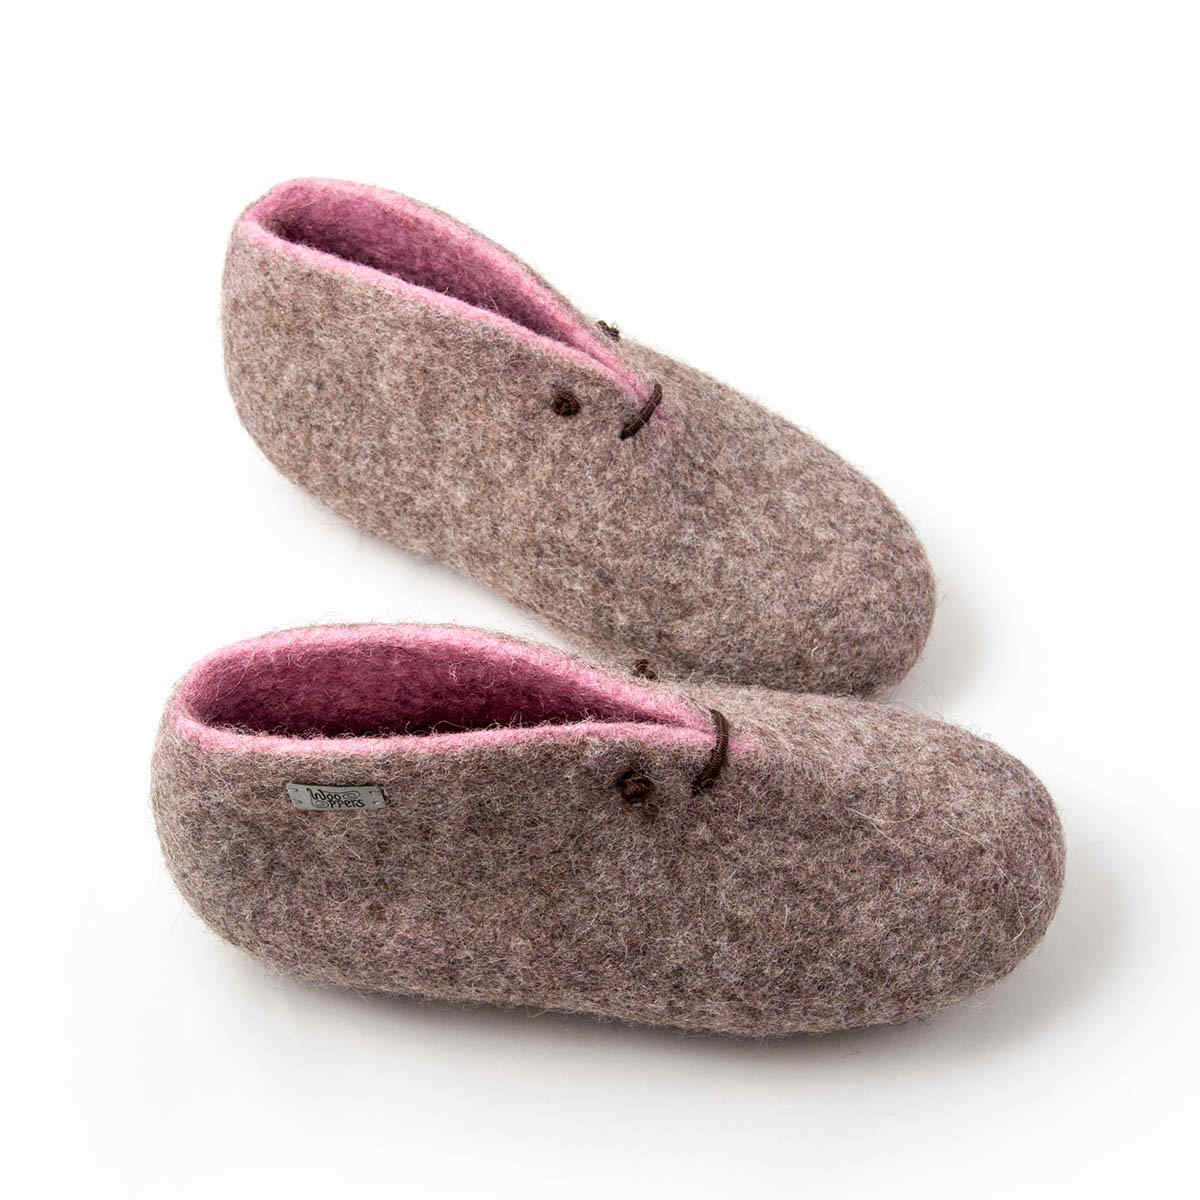 Boot slippers in grey and pink